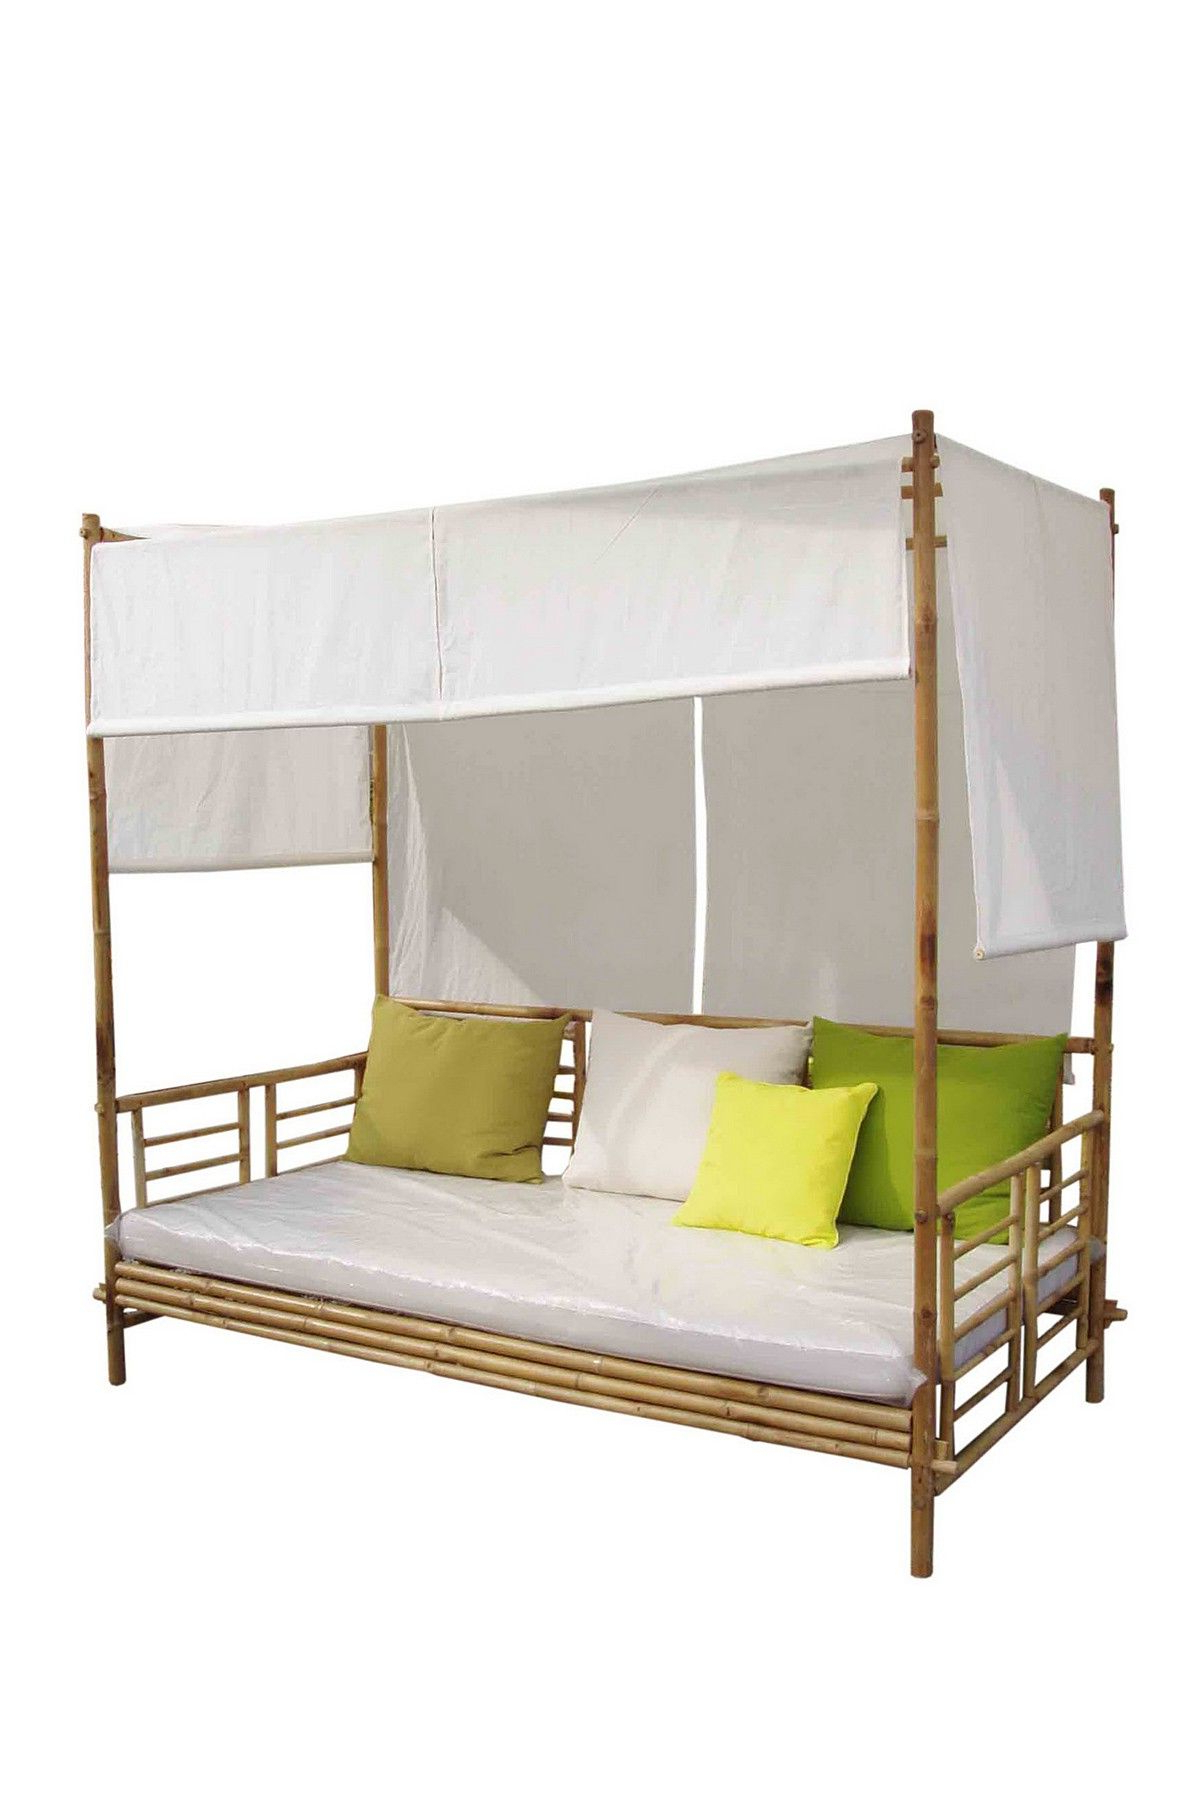 Most Popular Bamboo Daybeds With Canopy Regarding Bamboo Daybed With Canopy – I Would Be On This Everyday (View 16 of 25)